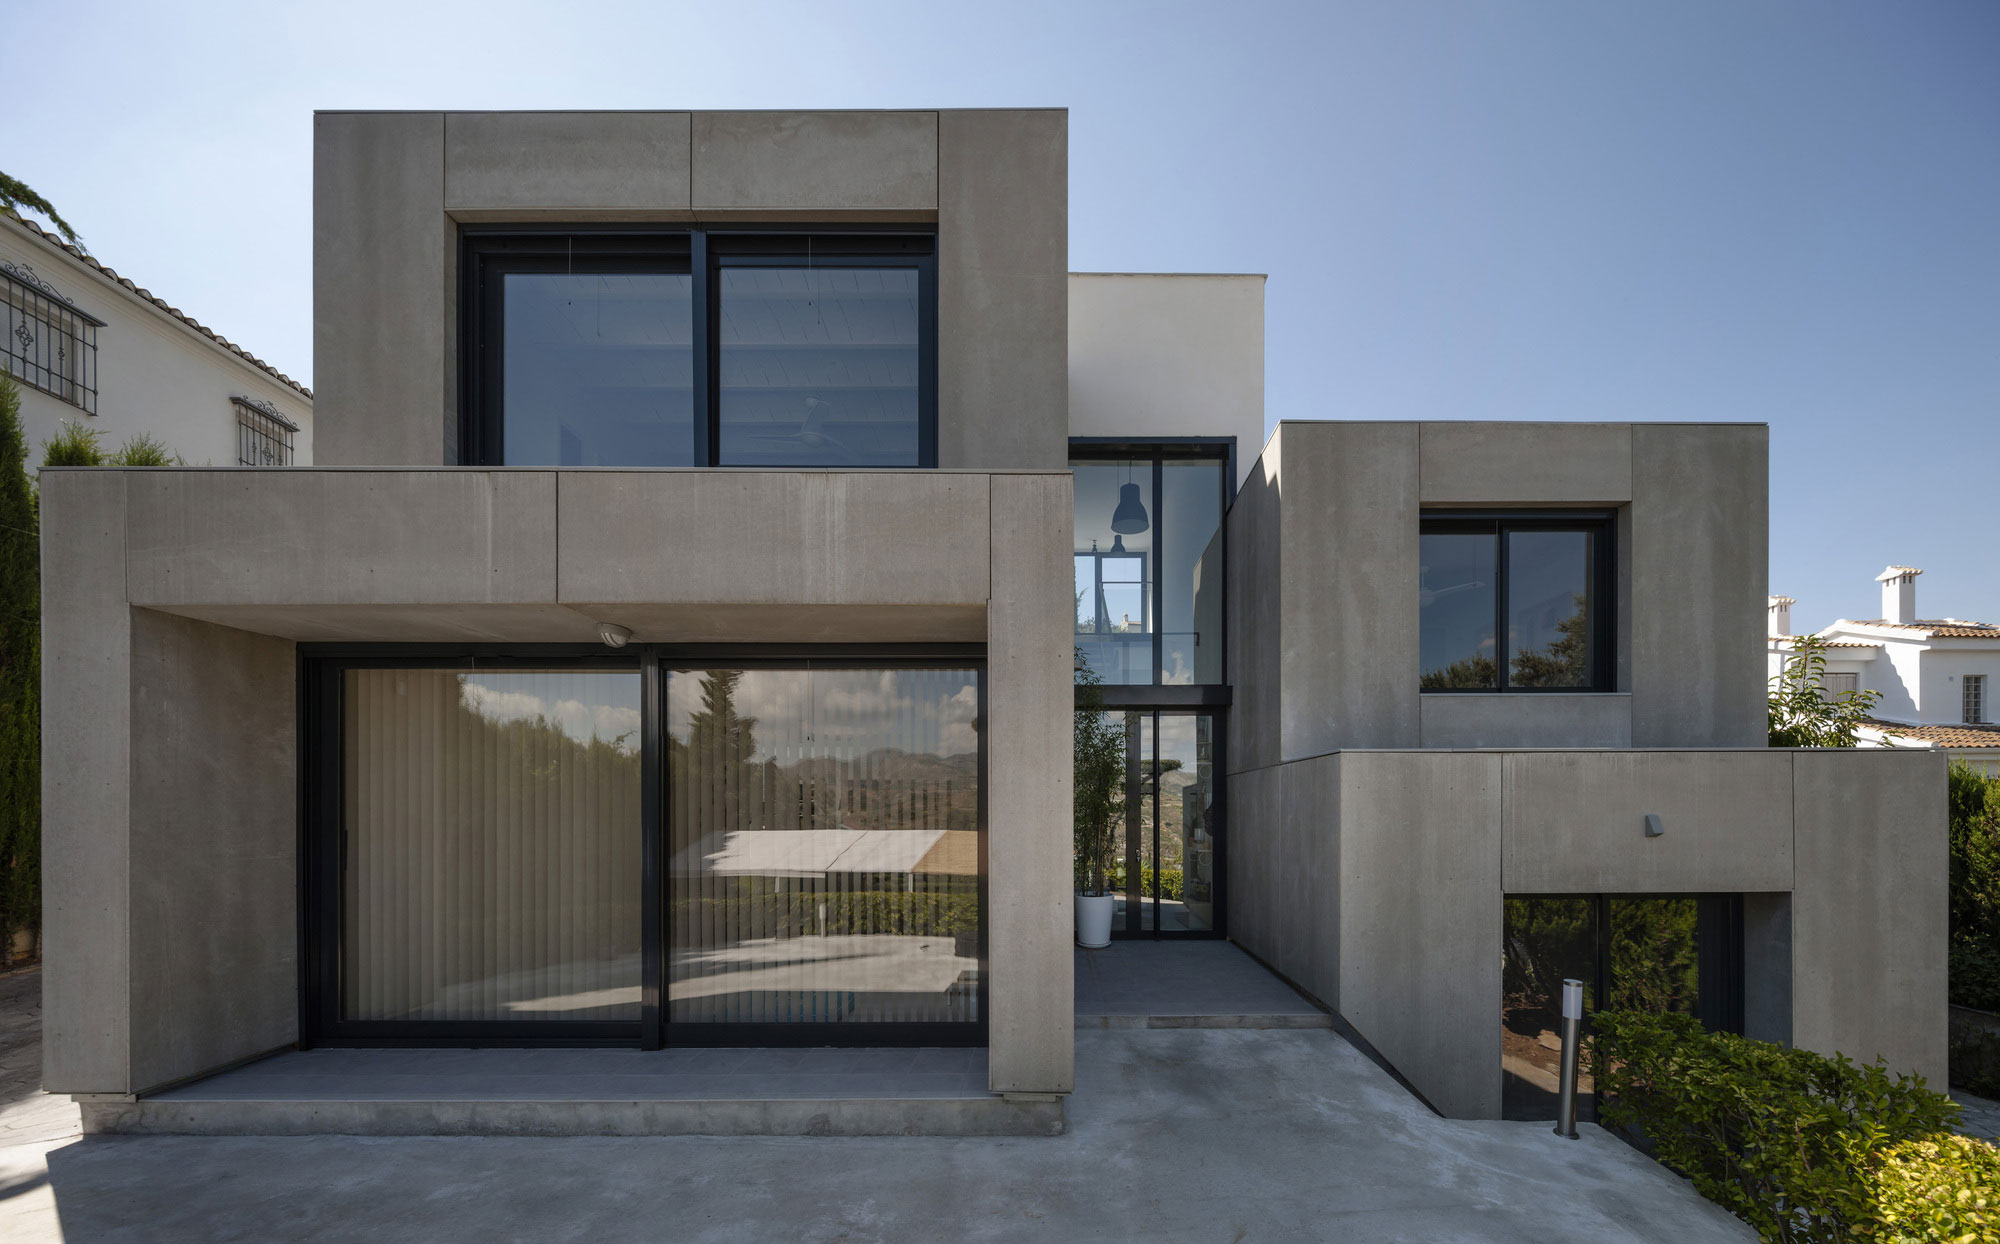 Modern and elegant c c house in granada spain 4 for Modern and postmodern design of building